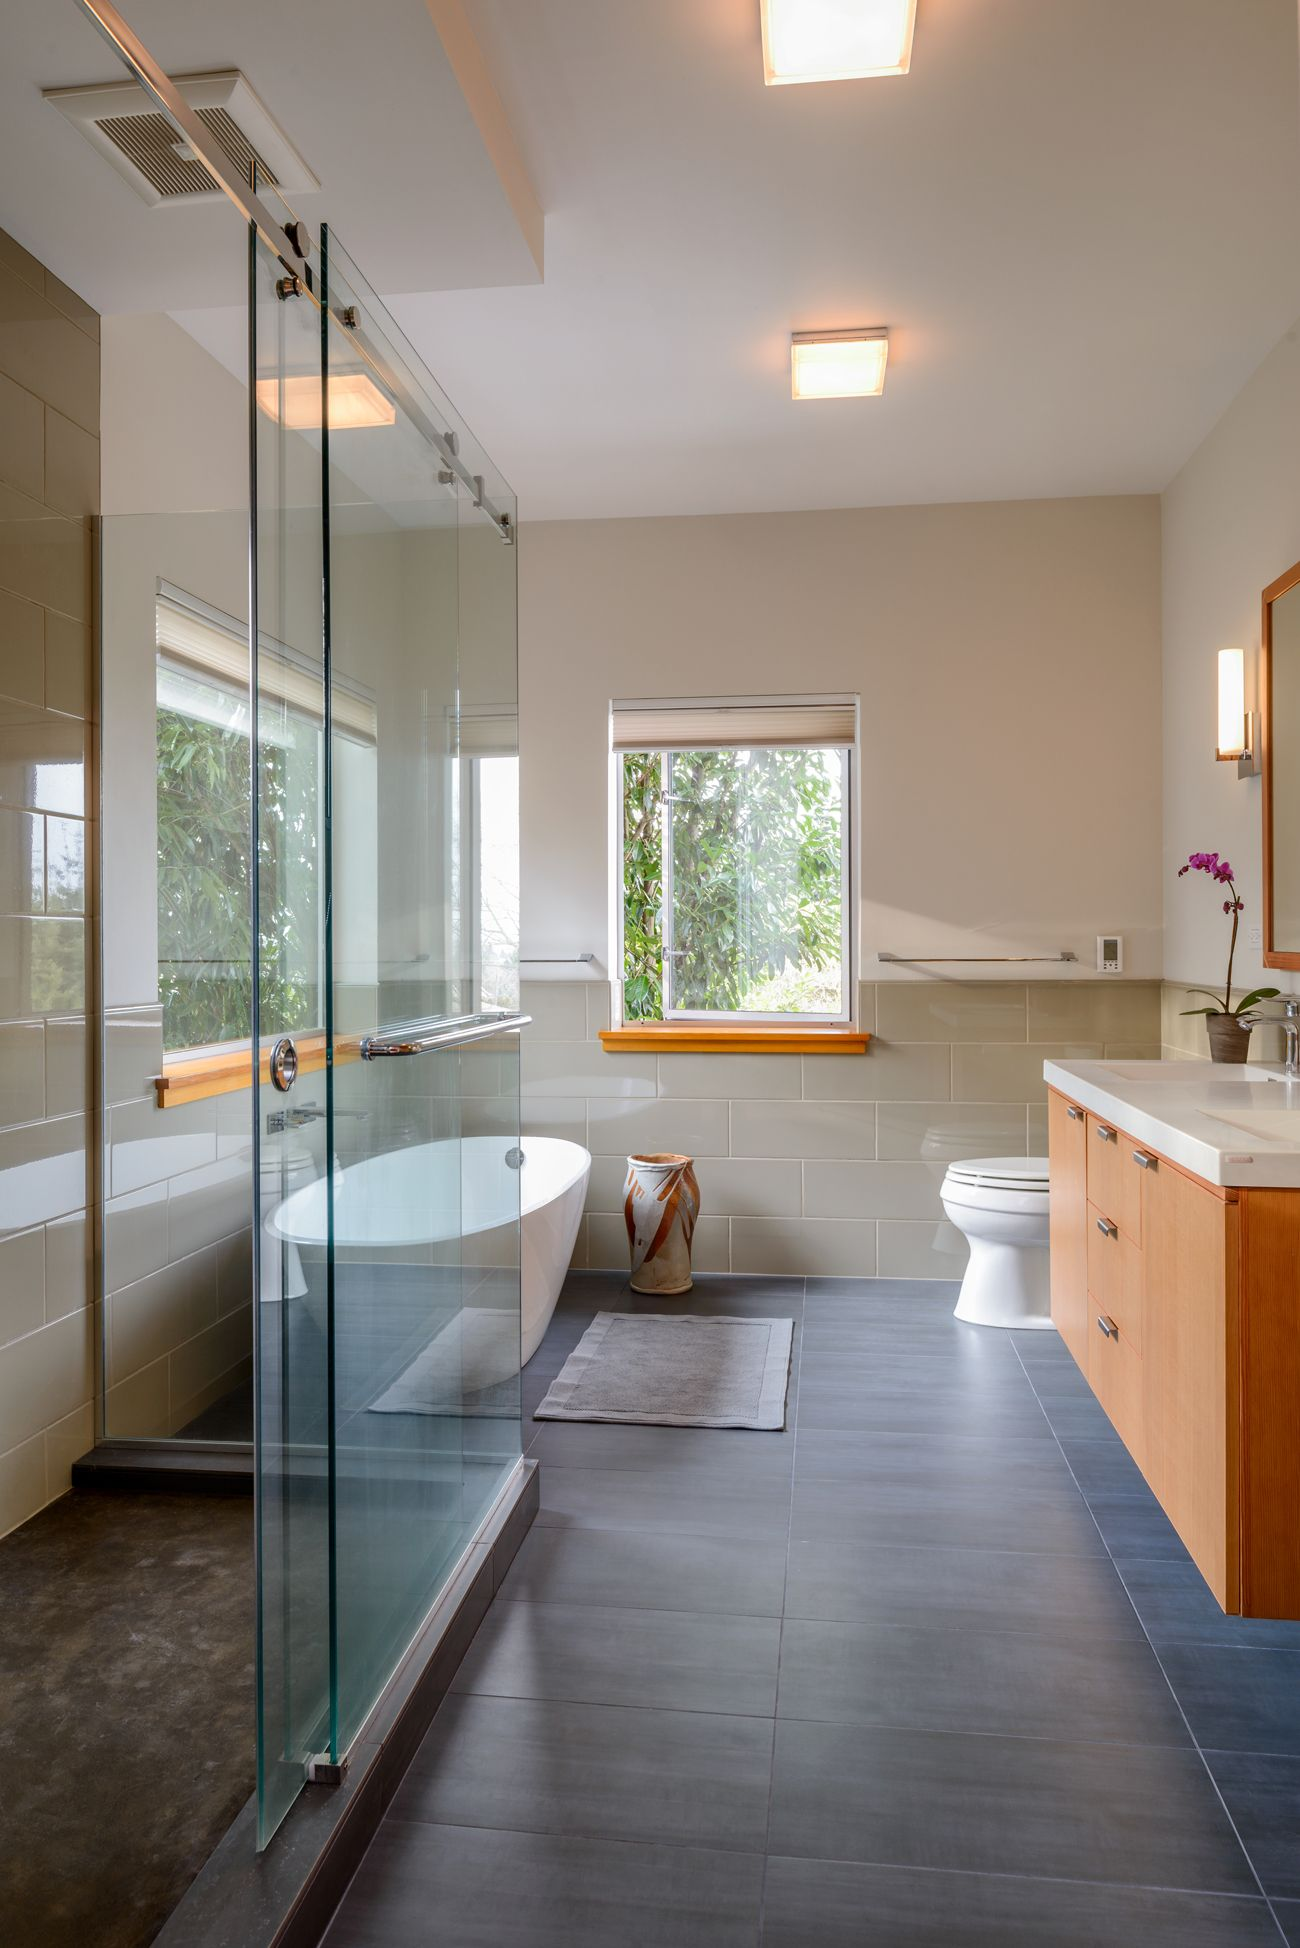 Seward Park Bathroom Remodel   Seattle   Modern Bathroom   Floating     Seward Park Bathroom Remodel   Seattle   Modern Bathroom   Floating Tub    Wood Window Sills   Built by Hammer   Hand